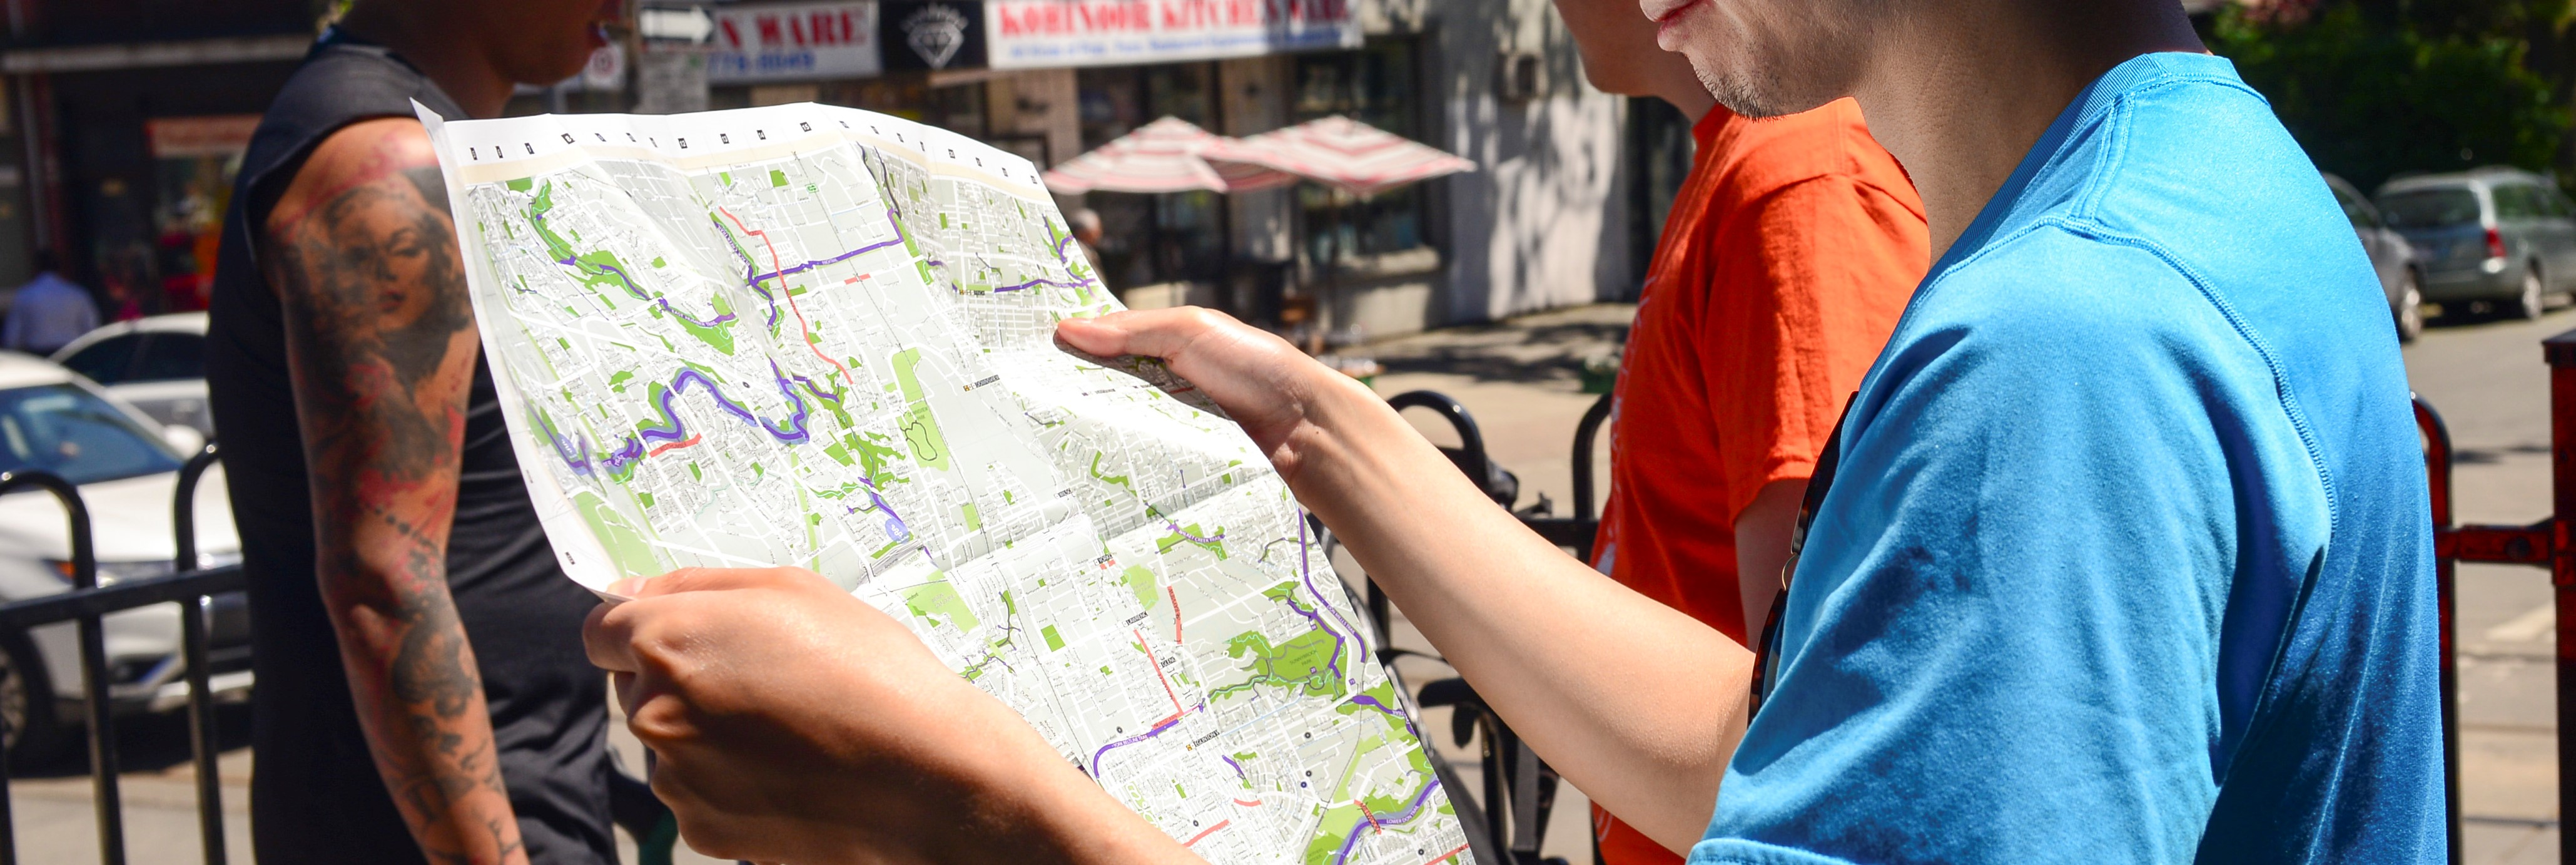 Person looking at map